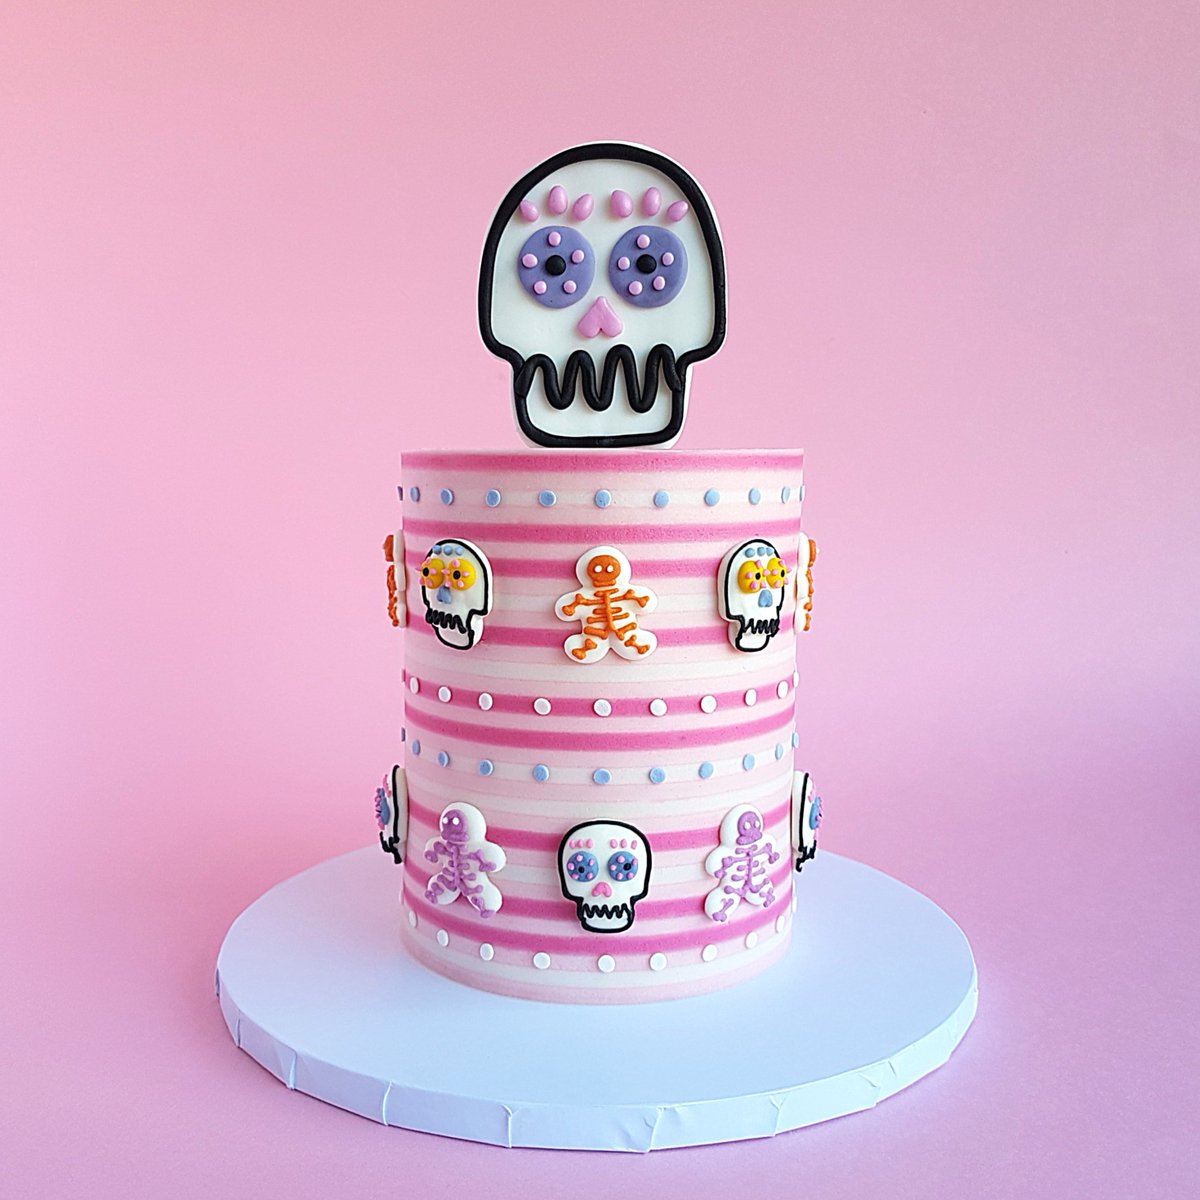 Bring on @BritishBakeOff #FestivalWeek  In celebration of the upcoming Day of the Dead Festival, this week's #showstopper - by #bakeboss The Sugar Alchemist - is a mini cake topped with our Trick or Tread 2Ds ⁣ #GBBO<br>http://pic.twitter.com/5hP2Sl7zLk